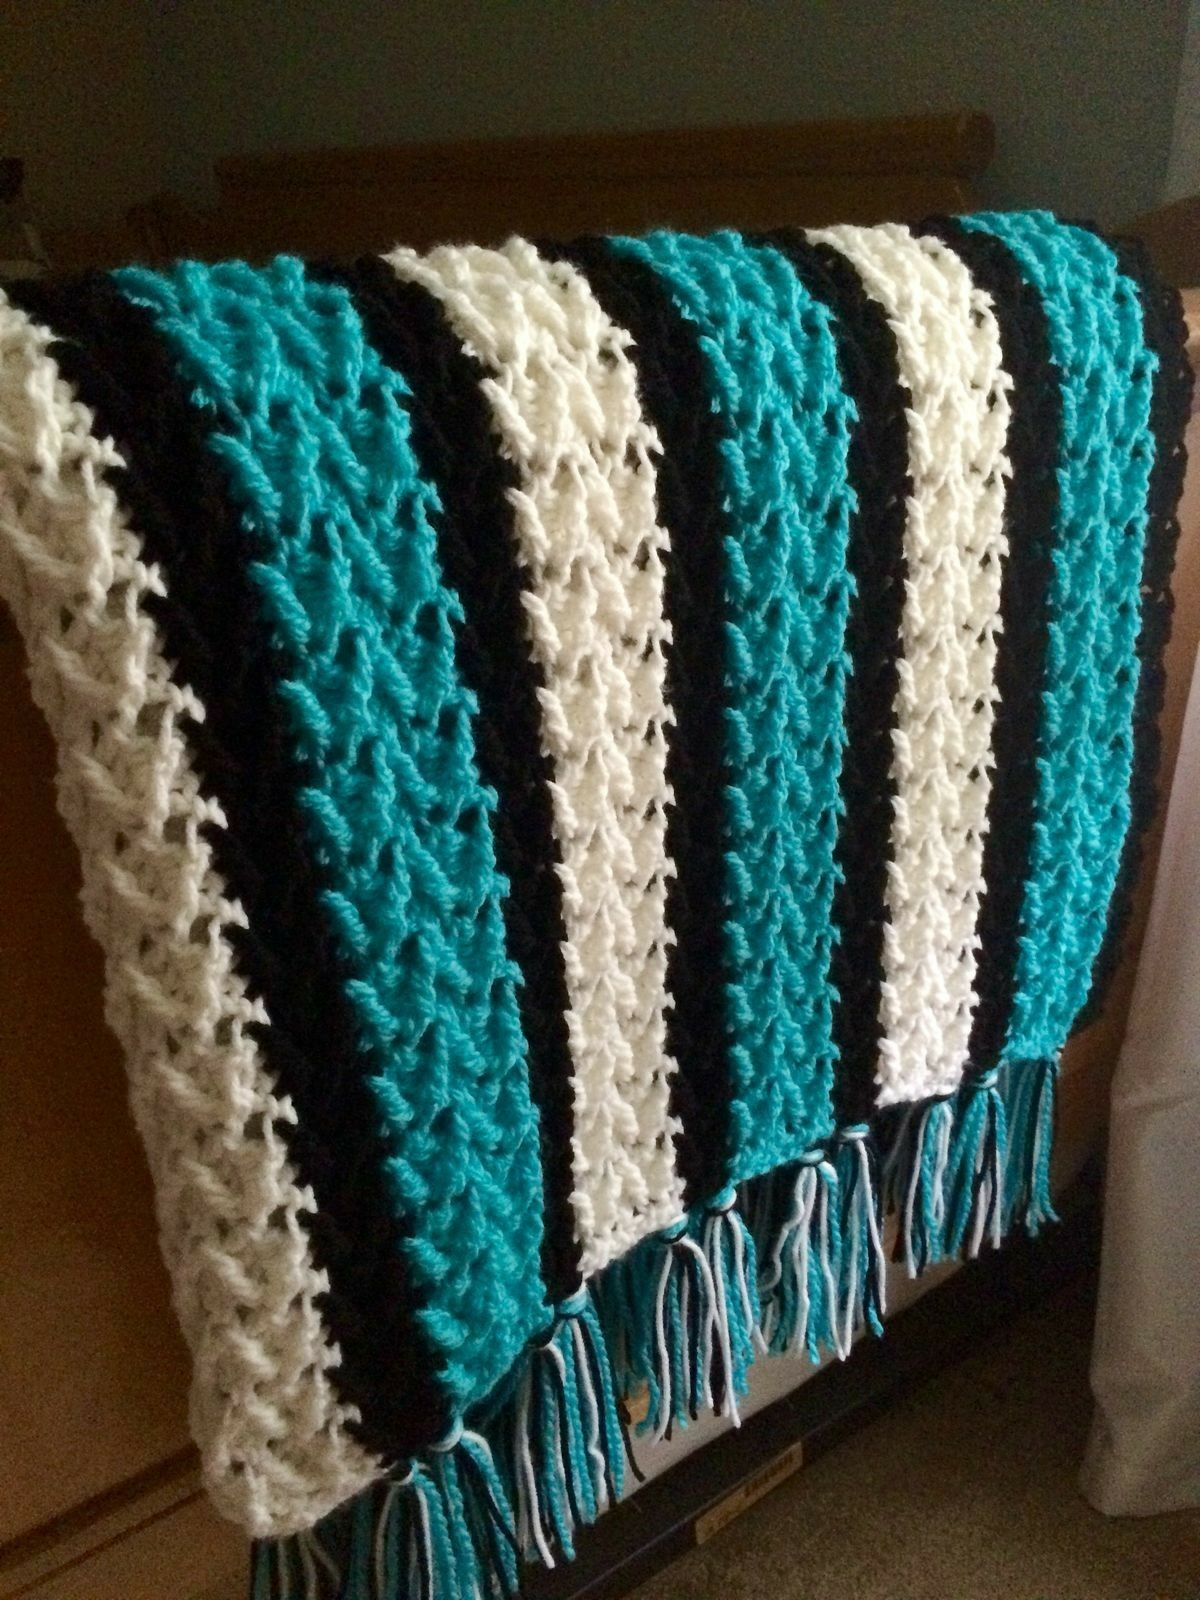 b56ed8b01817 Arrowhead Crochet Blanket Pattern with NC Panthers Colors for Ethan ...